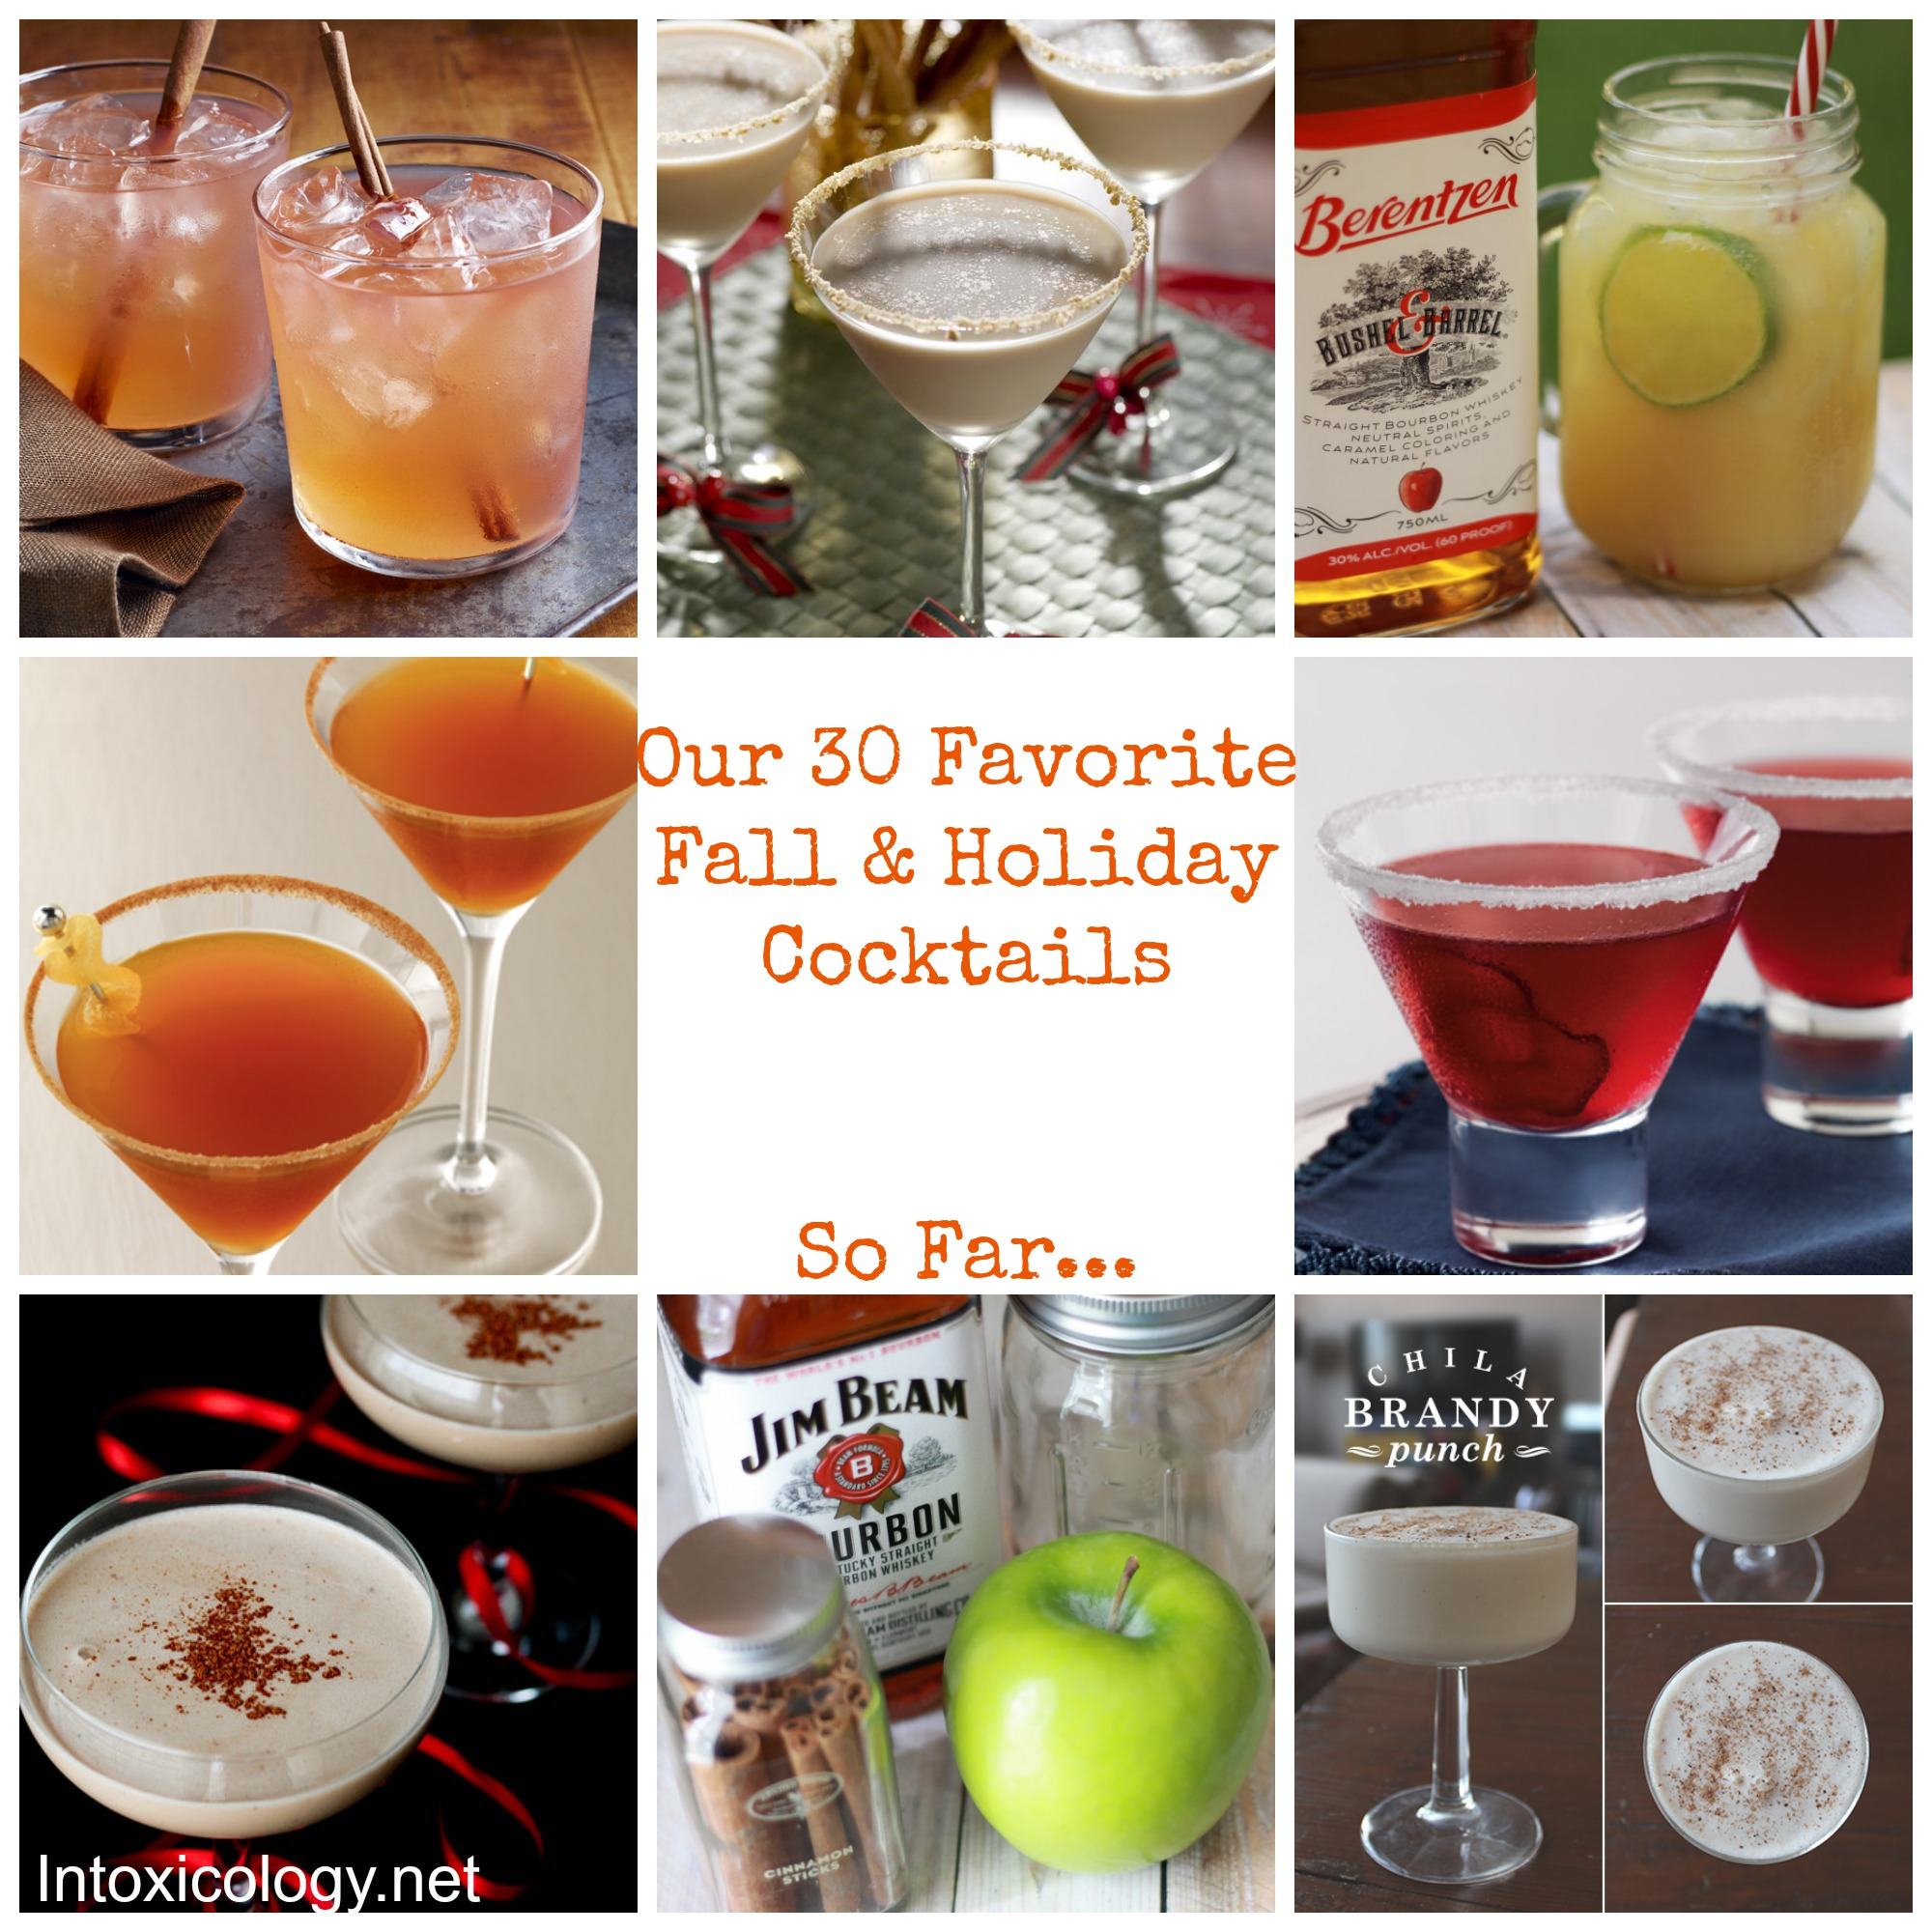 Our 30 Favorite Fall Cocktail Recipes of 2014…So far